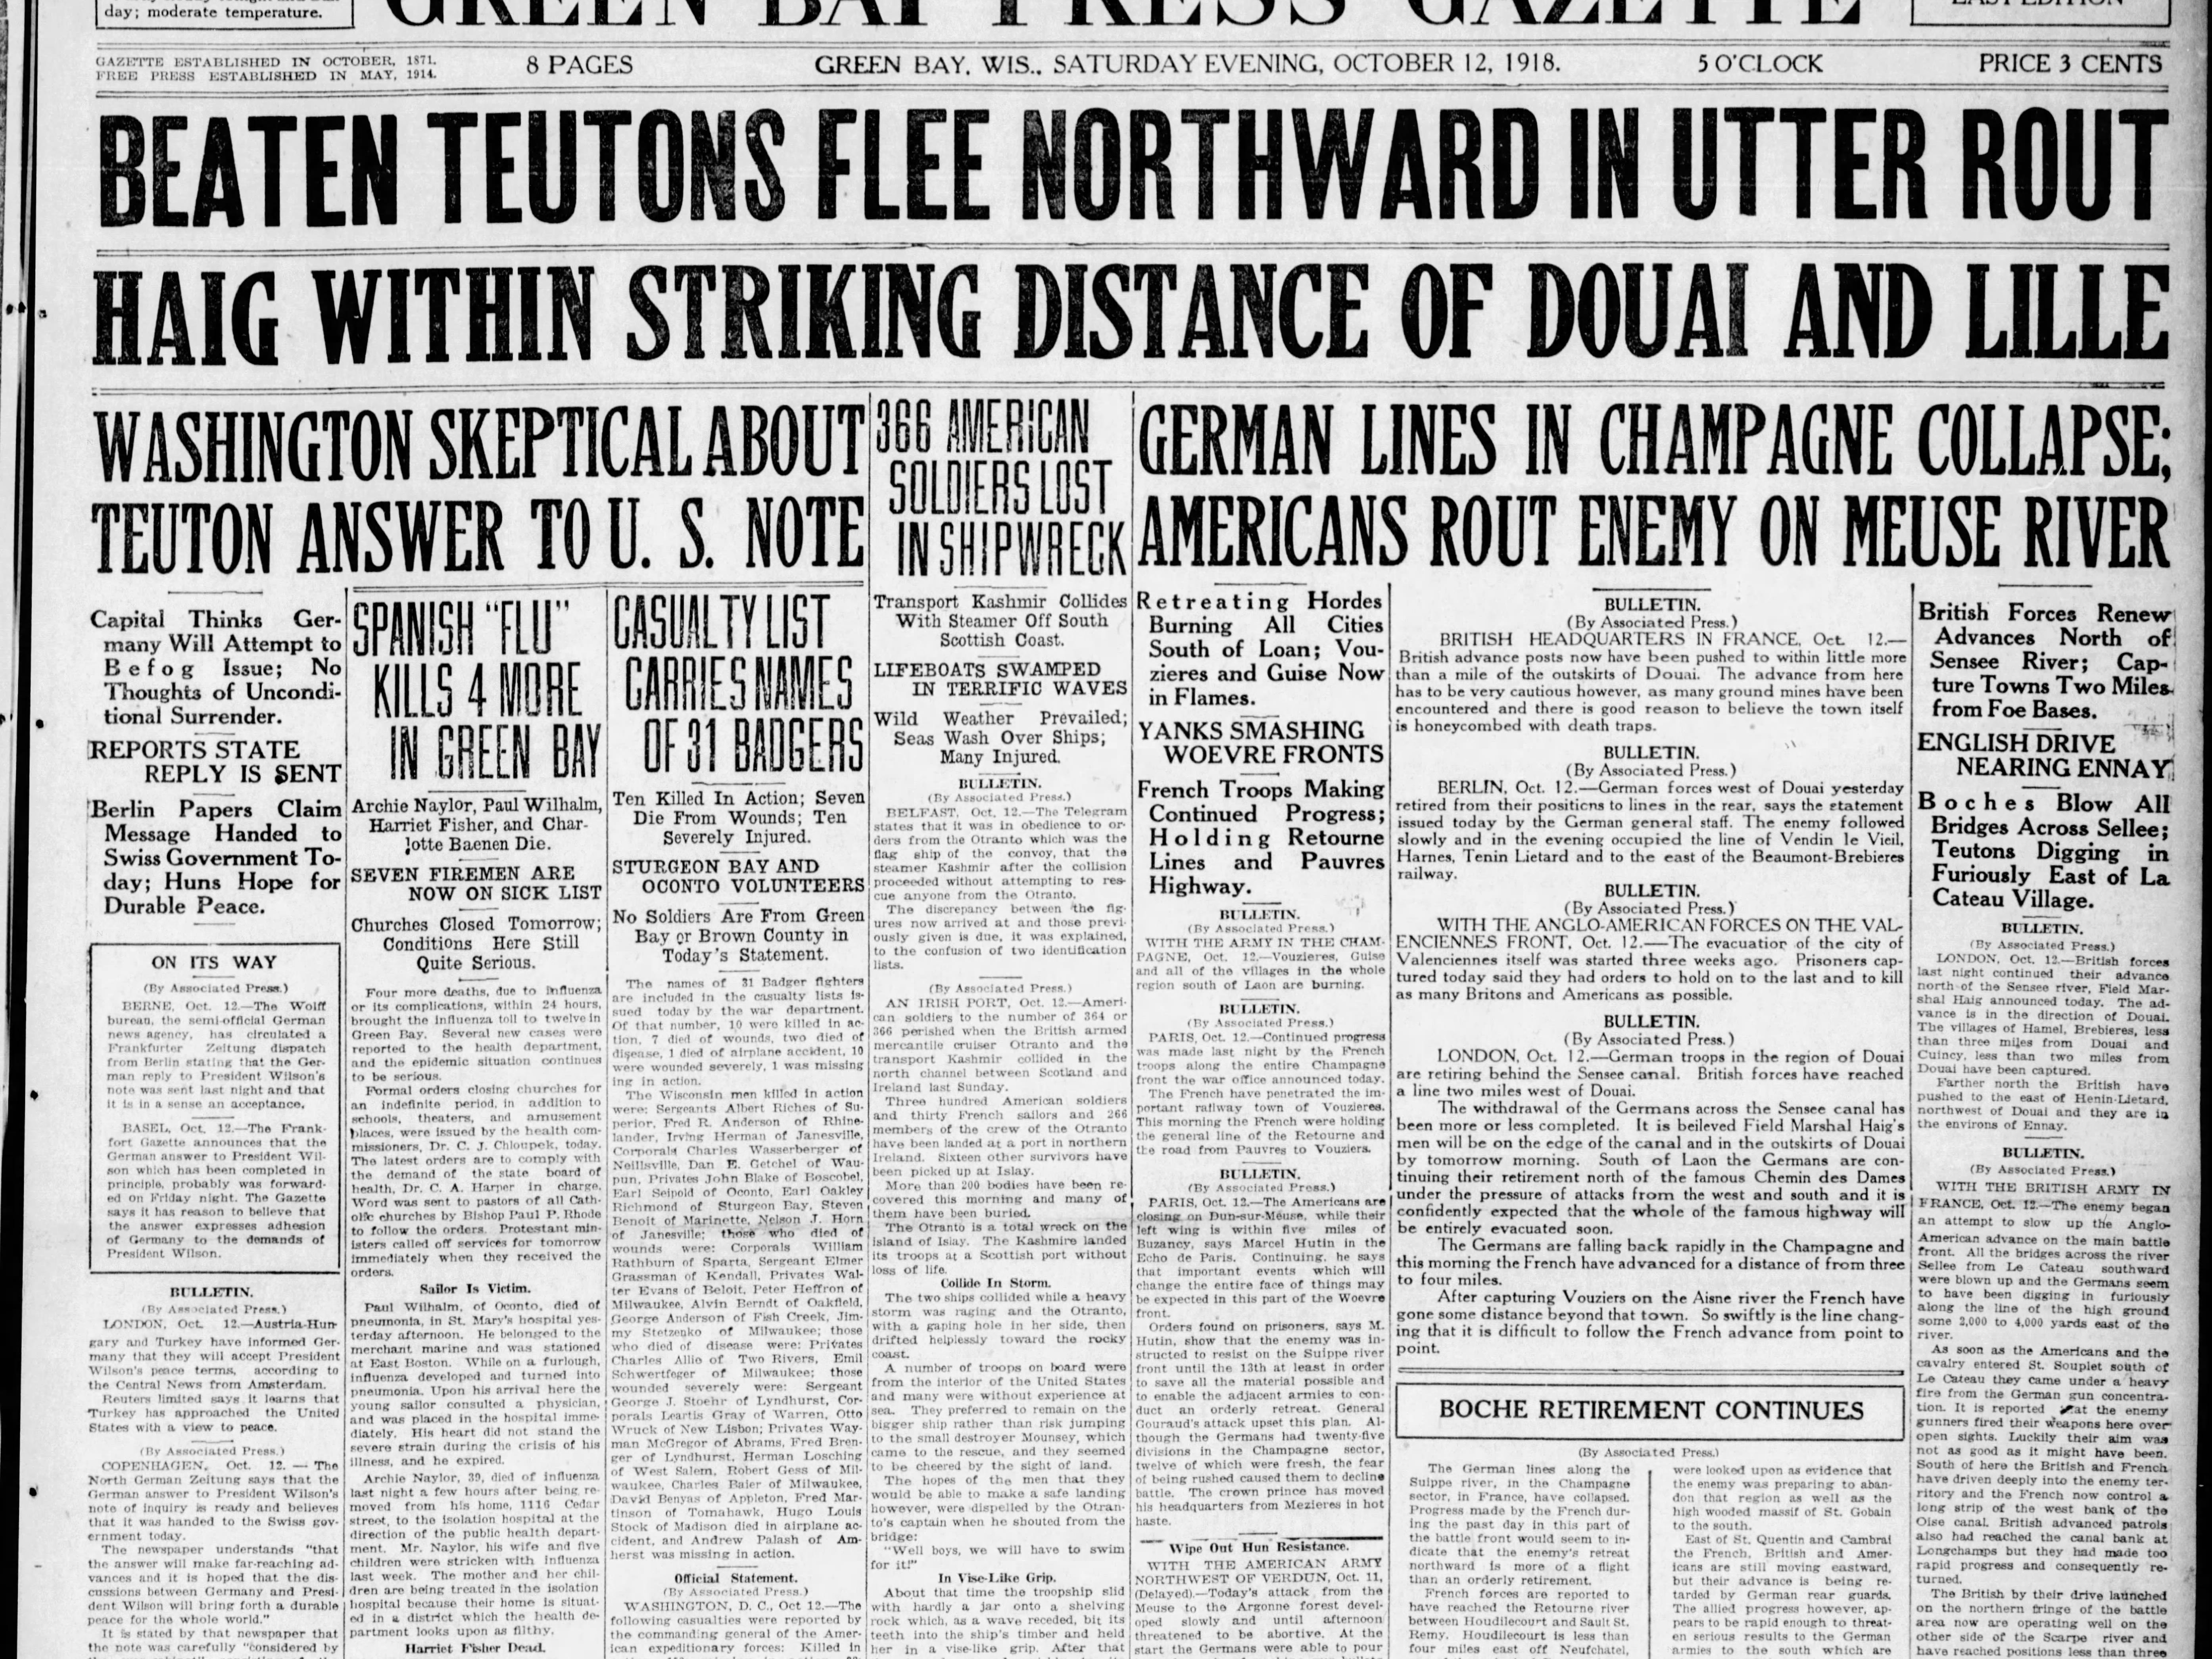 Today in History: Oct. 12, 1918